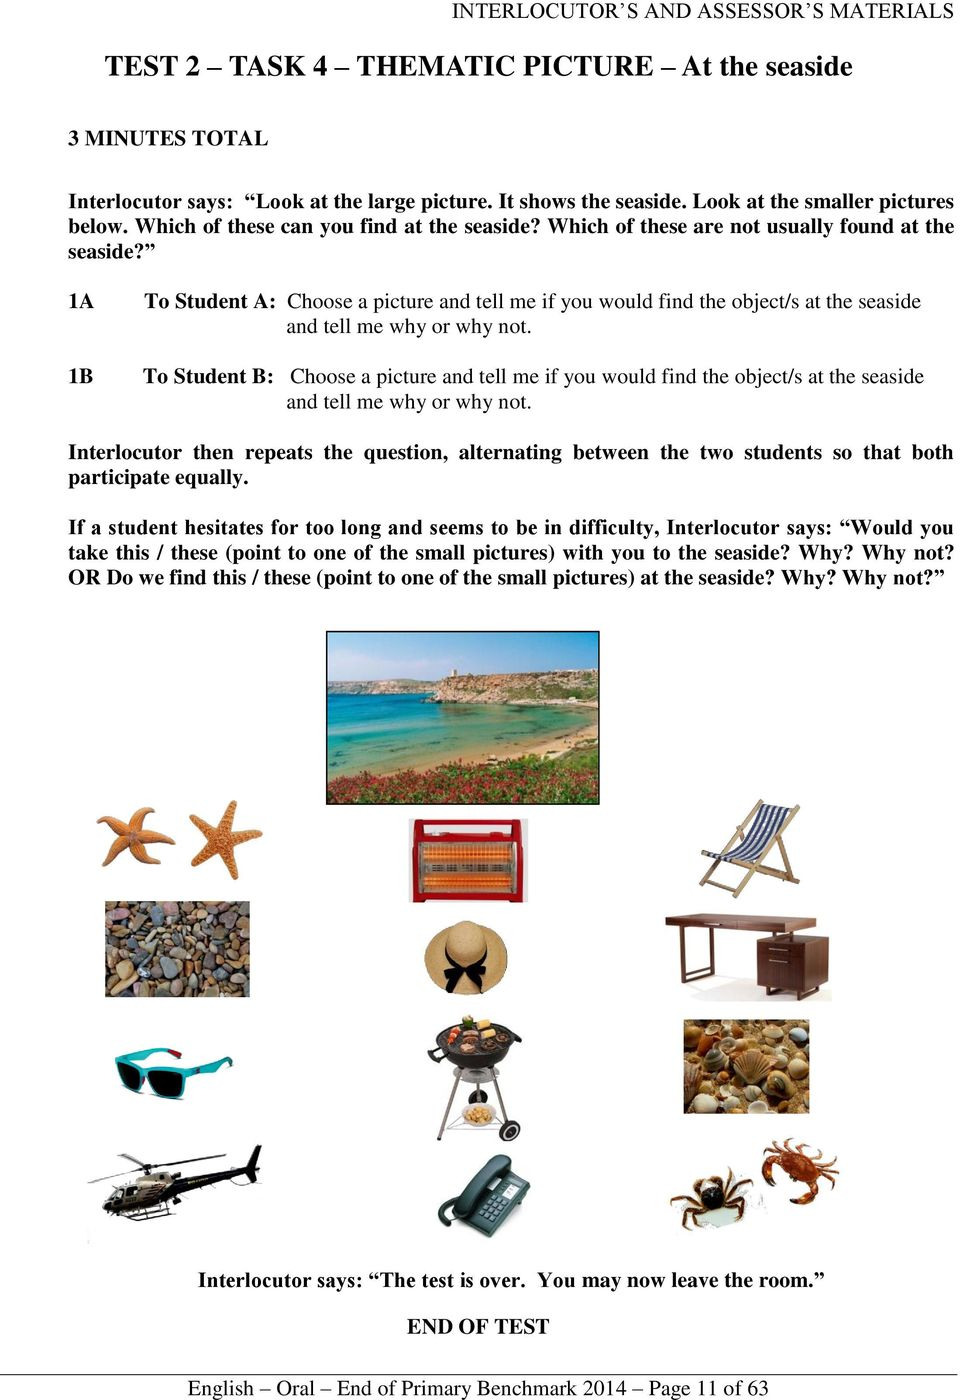 To Student B: Choose a picture and tell me if you would find the object/s at the seaside and tell me why or why not.